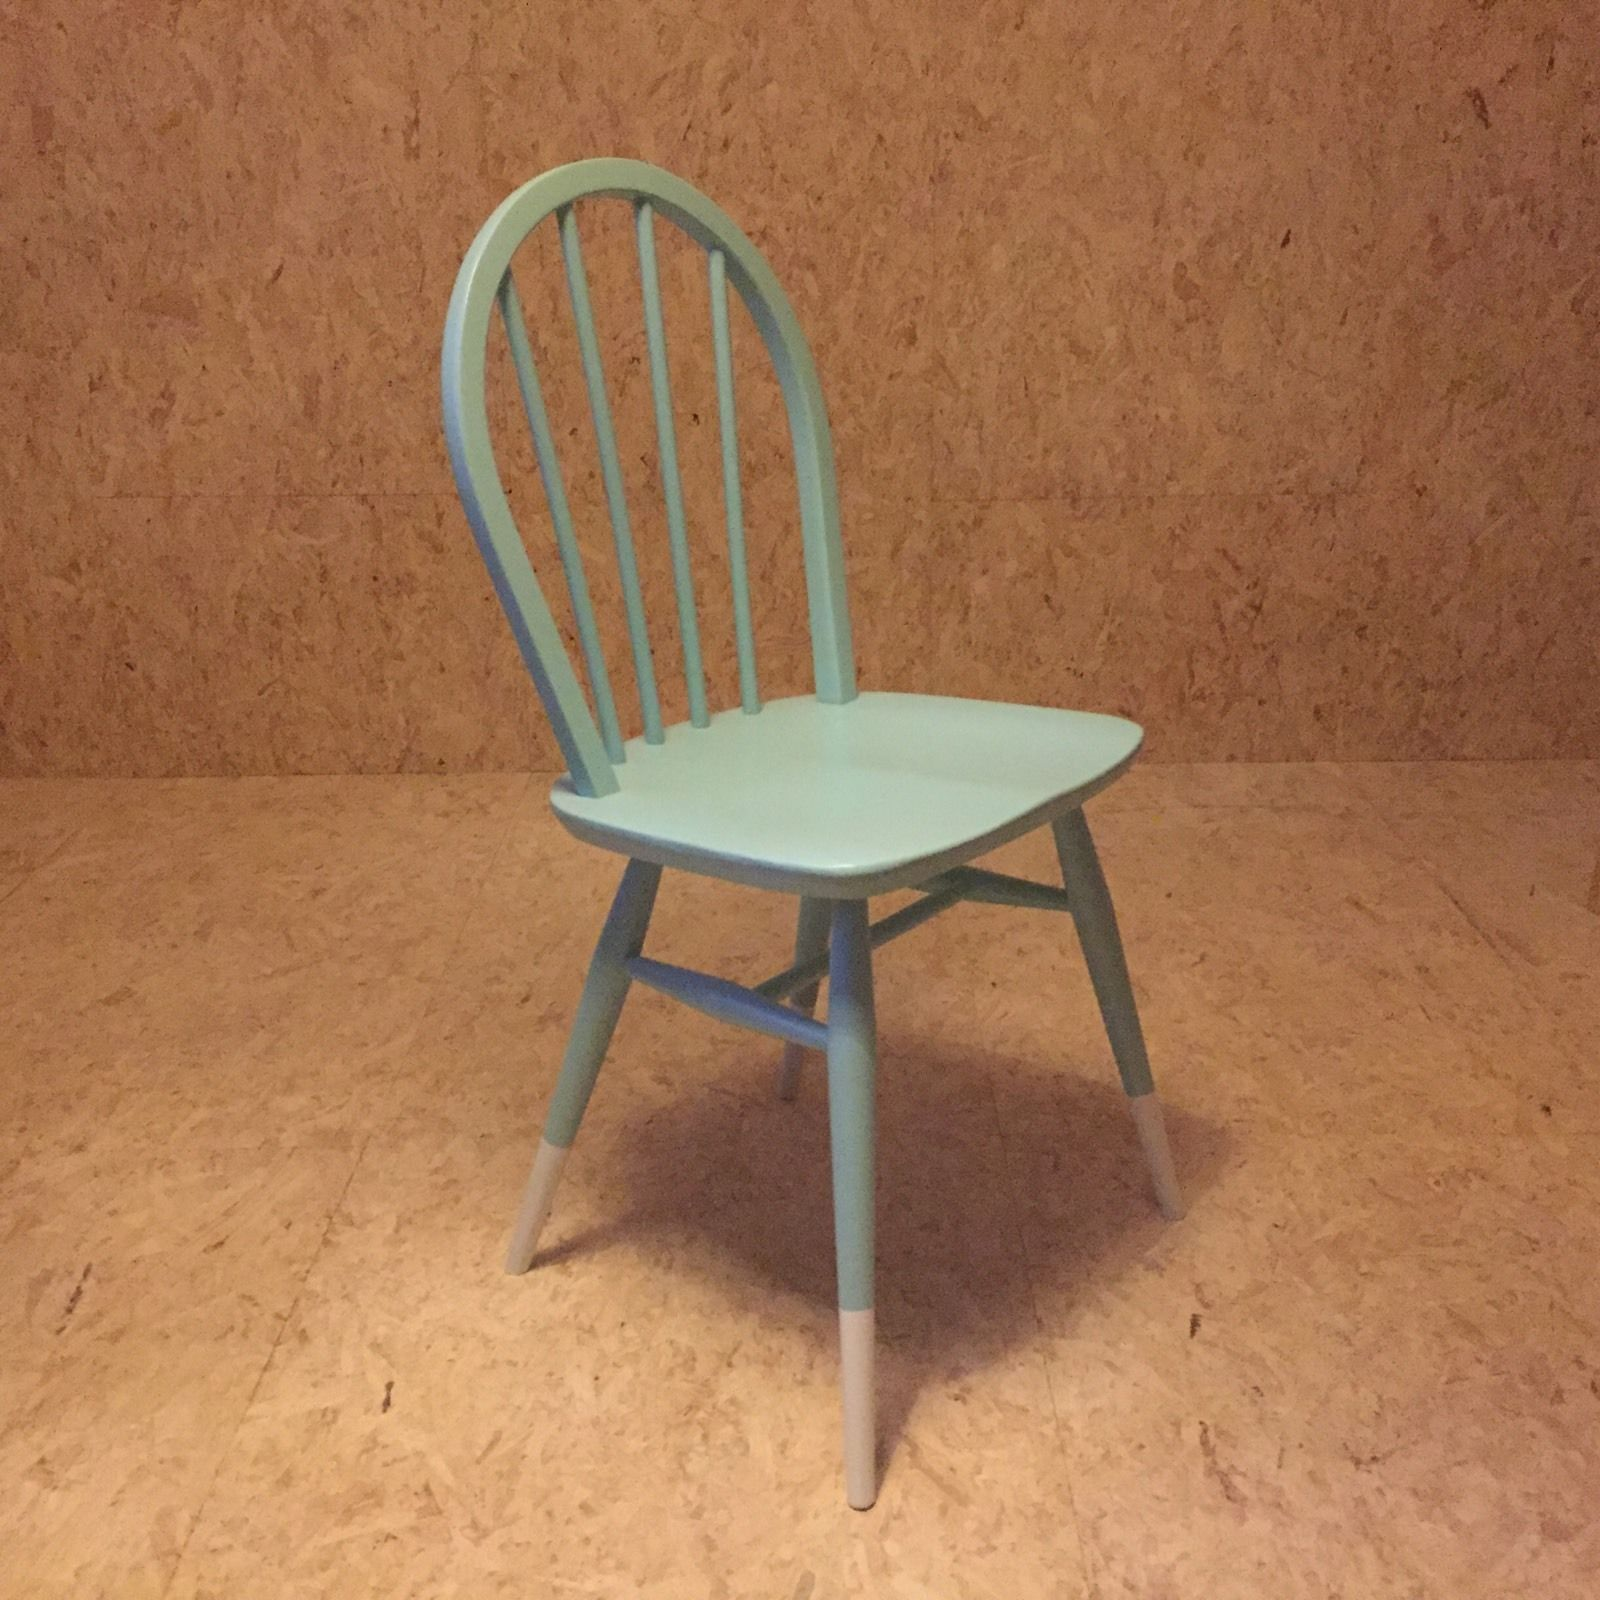 Vintage retro ercol drop leaf round dining kitchen table ebay - Ercol Dip Leg Painted Windsor Dining Chair Upcycled